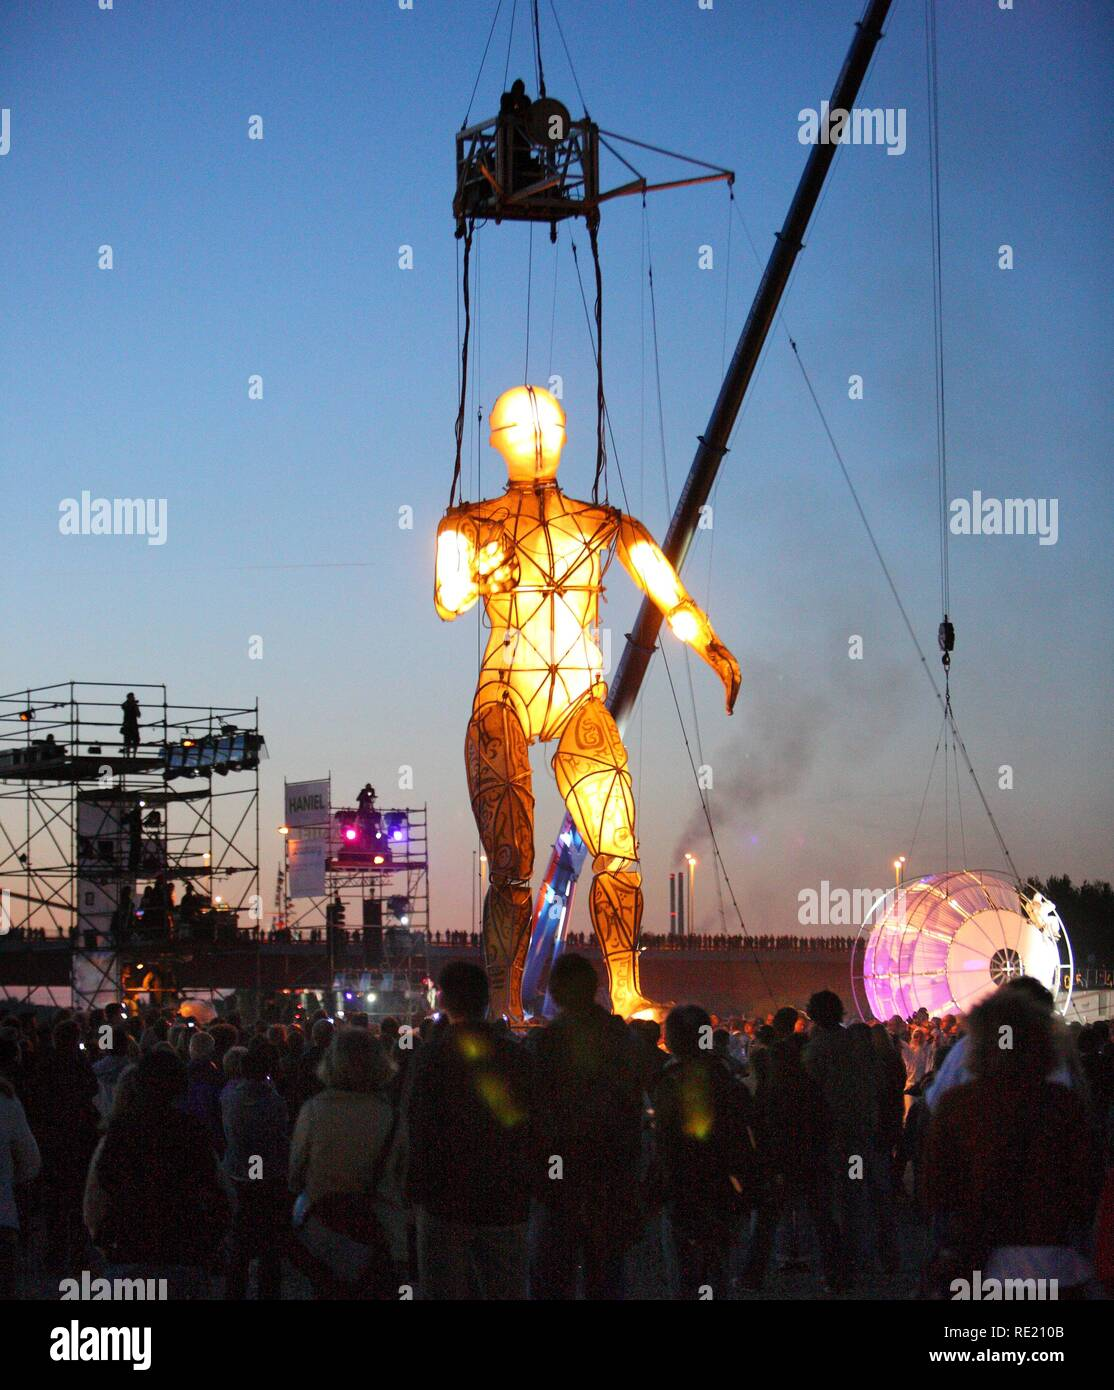 Global Rheingold, theatrical spectacle of the Spanish theatre group La Fura dels Baus, opening of the theatre festival Duisburg - Stock Image